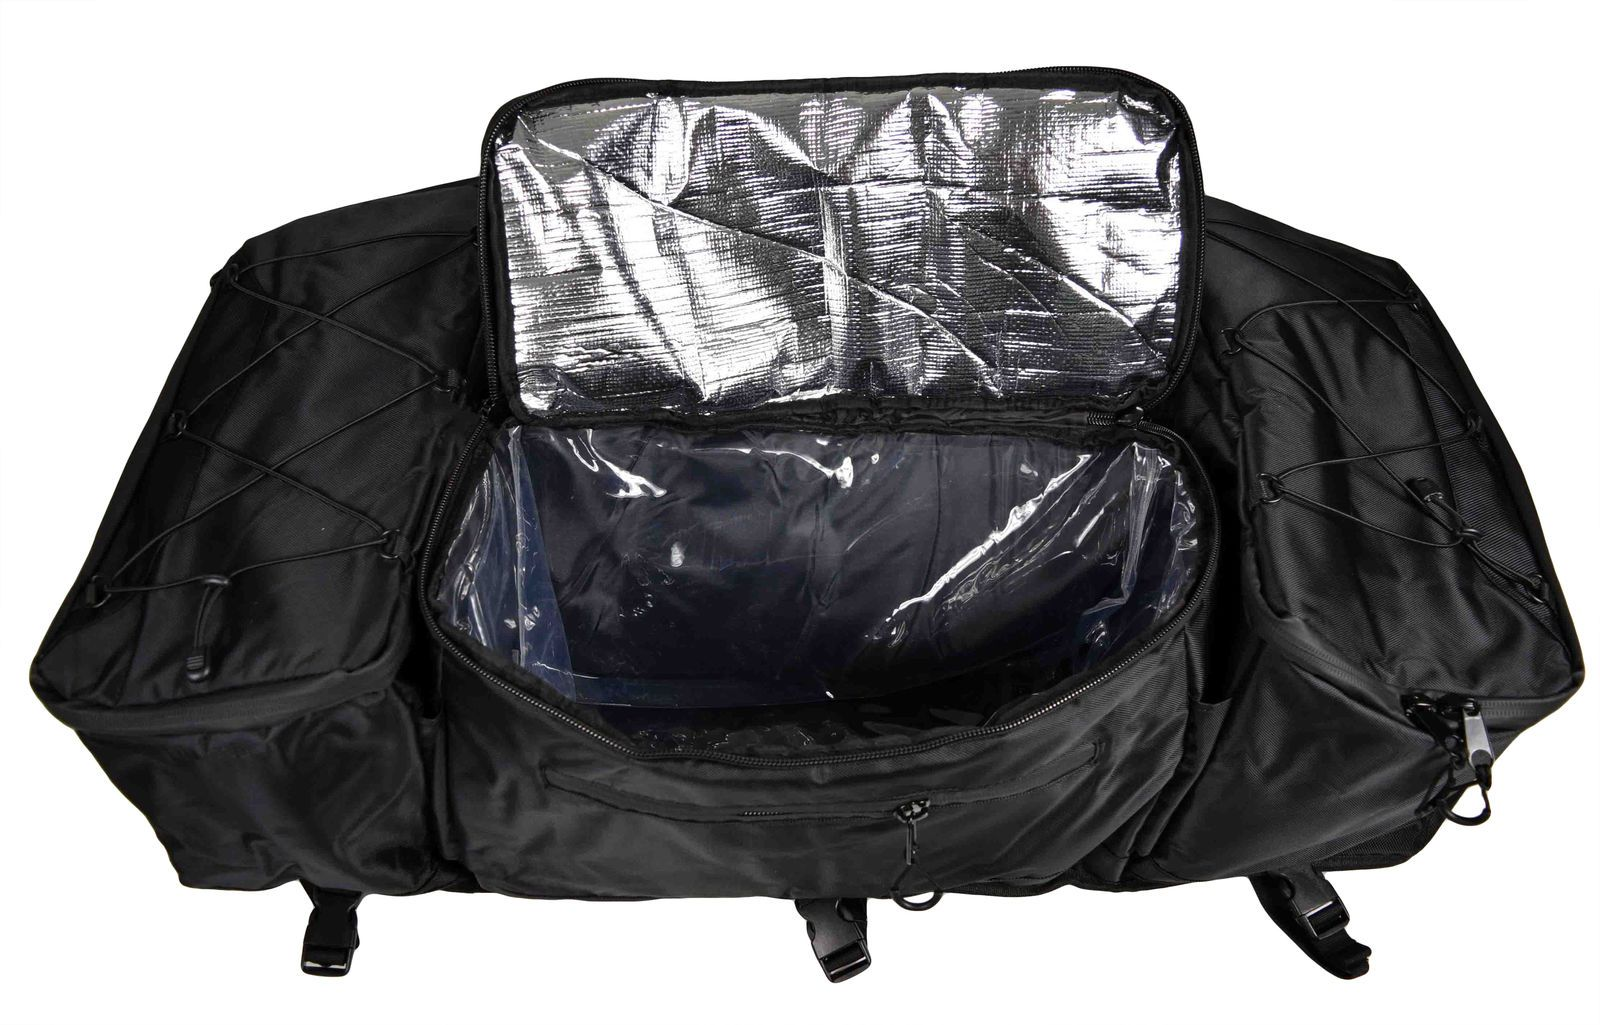 Kolpin 91156 ATV Gear /& Cooler Bag Black